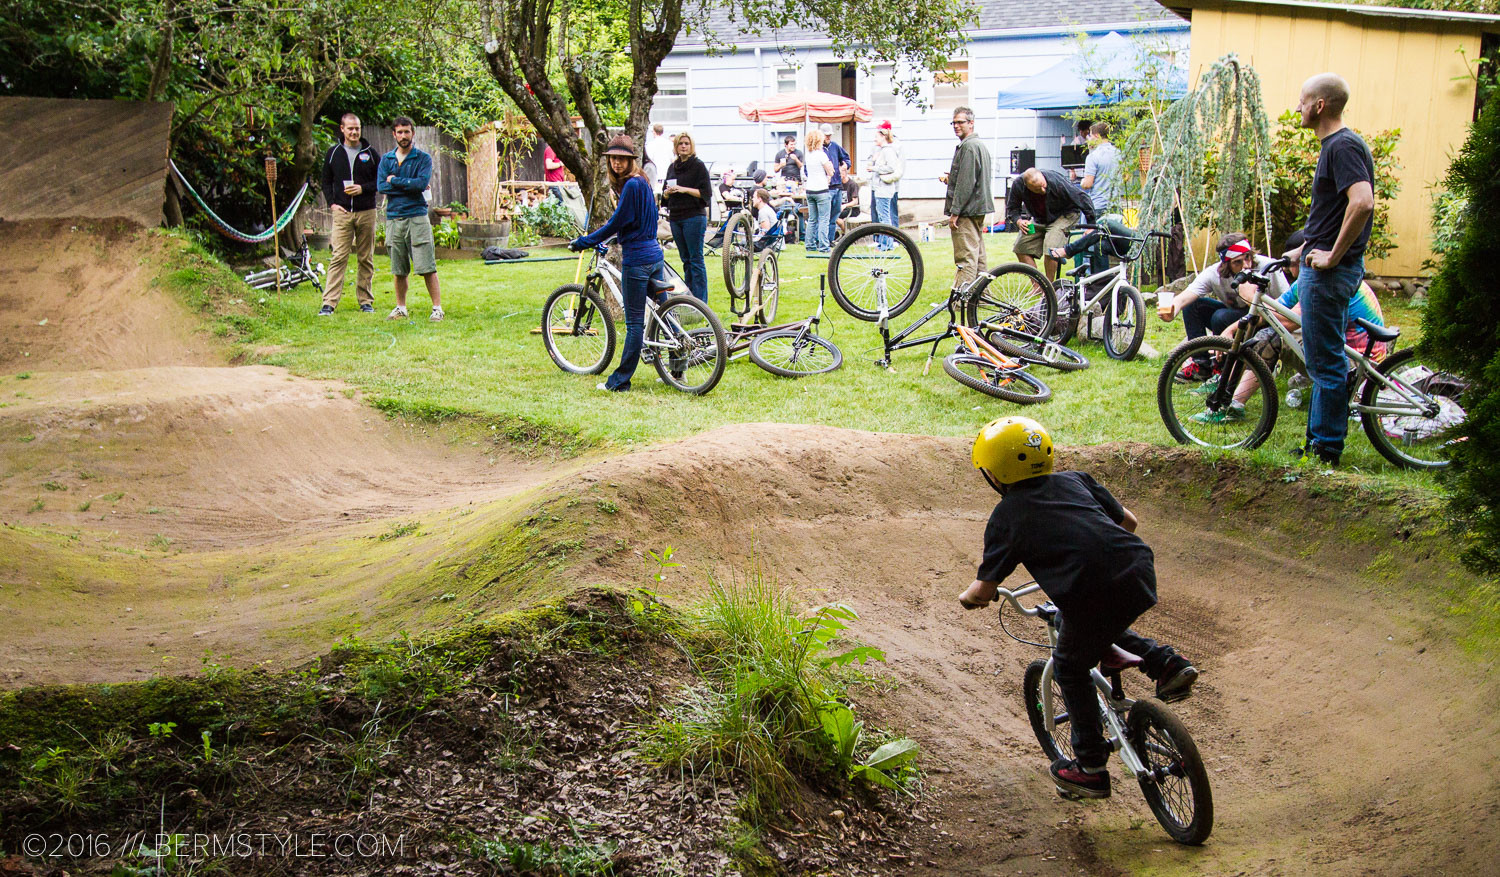 This backyard pump track was small, but using a free flowing layout and skate park like features like dirt quarter pipes and wall rides.